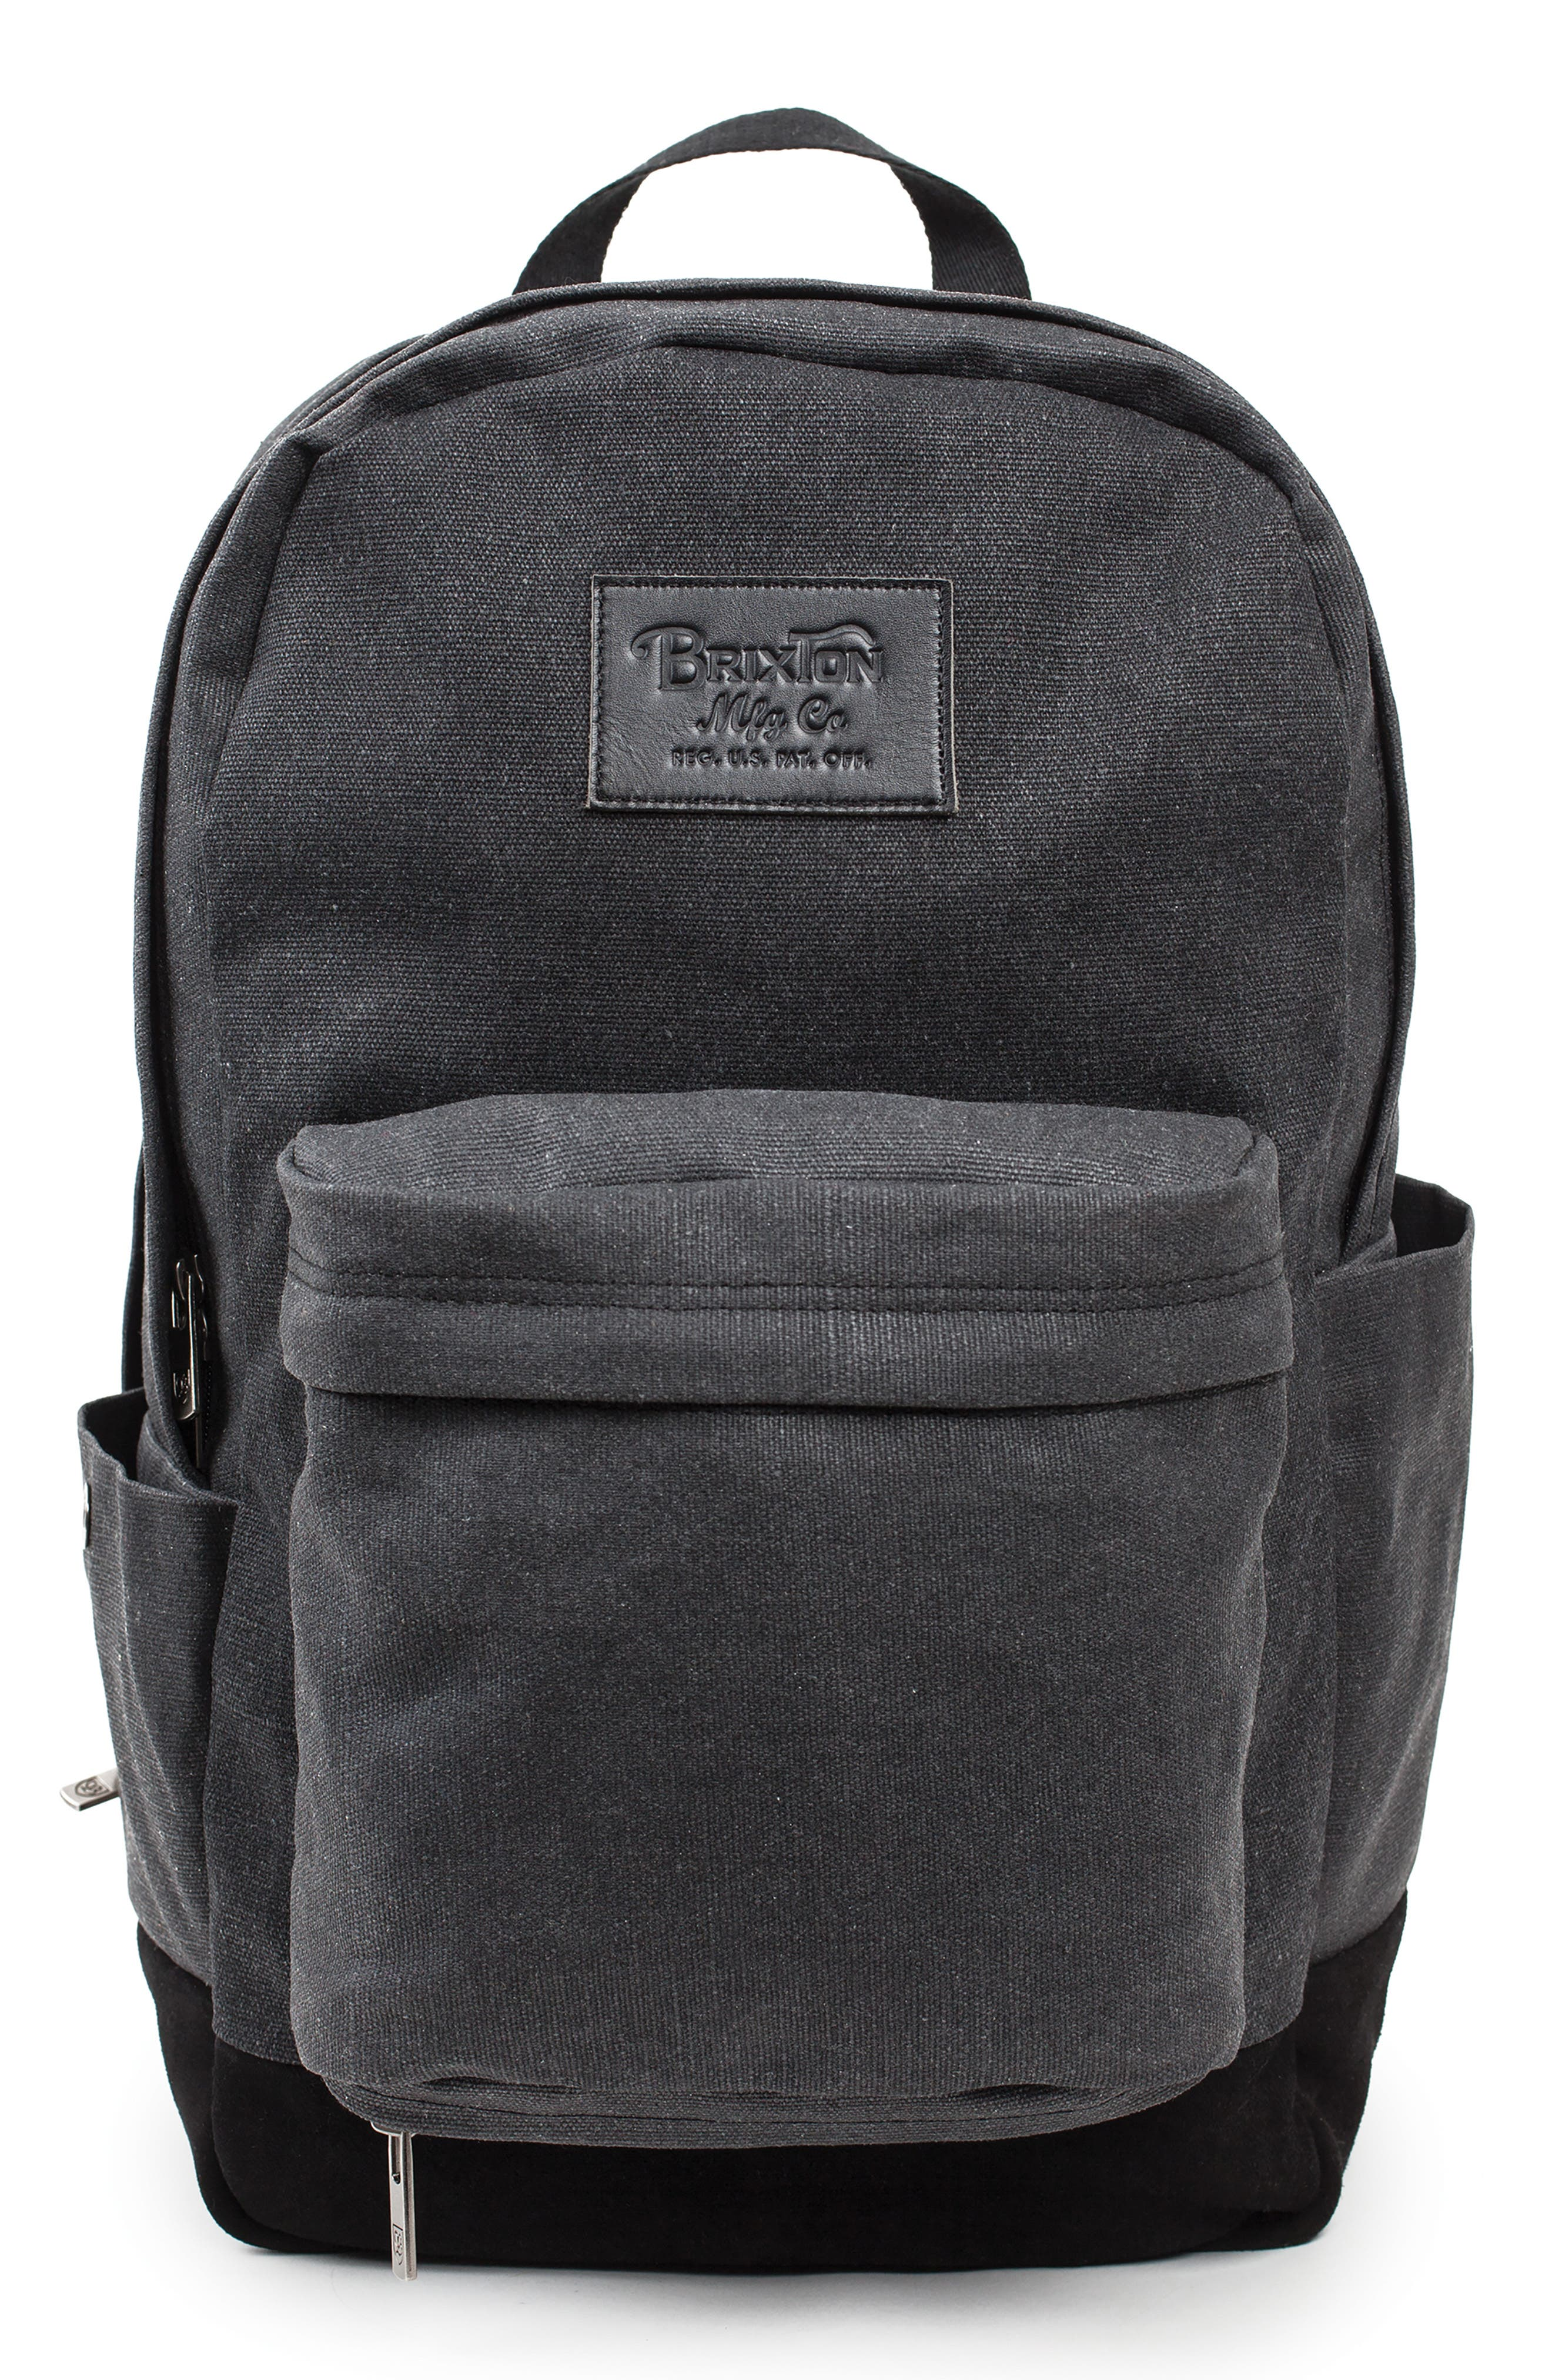 Basin Classic Backpack,                         Main,                         color, BLACK CANVAS